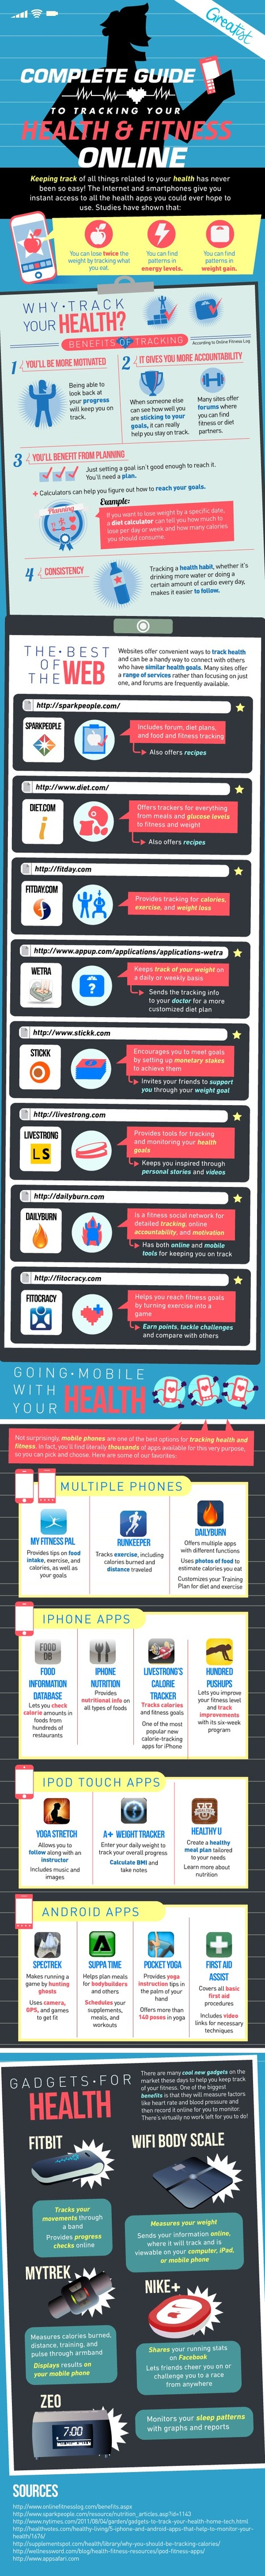 Complete Guide to Tracking Your Health and FitnessOnline | Health and Fitness Magazine | Scoop.it